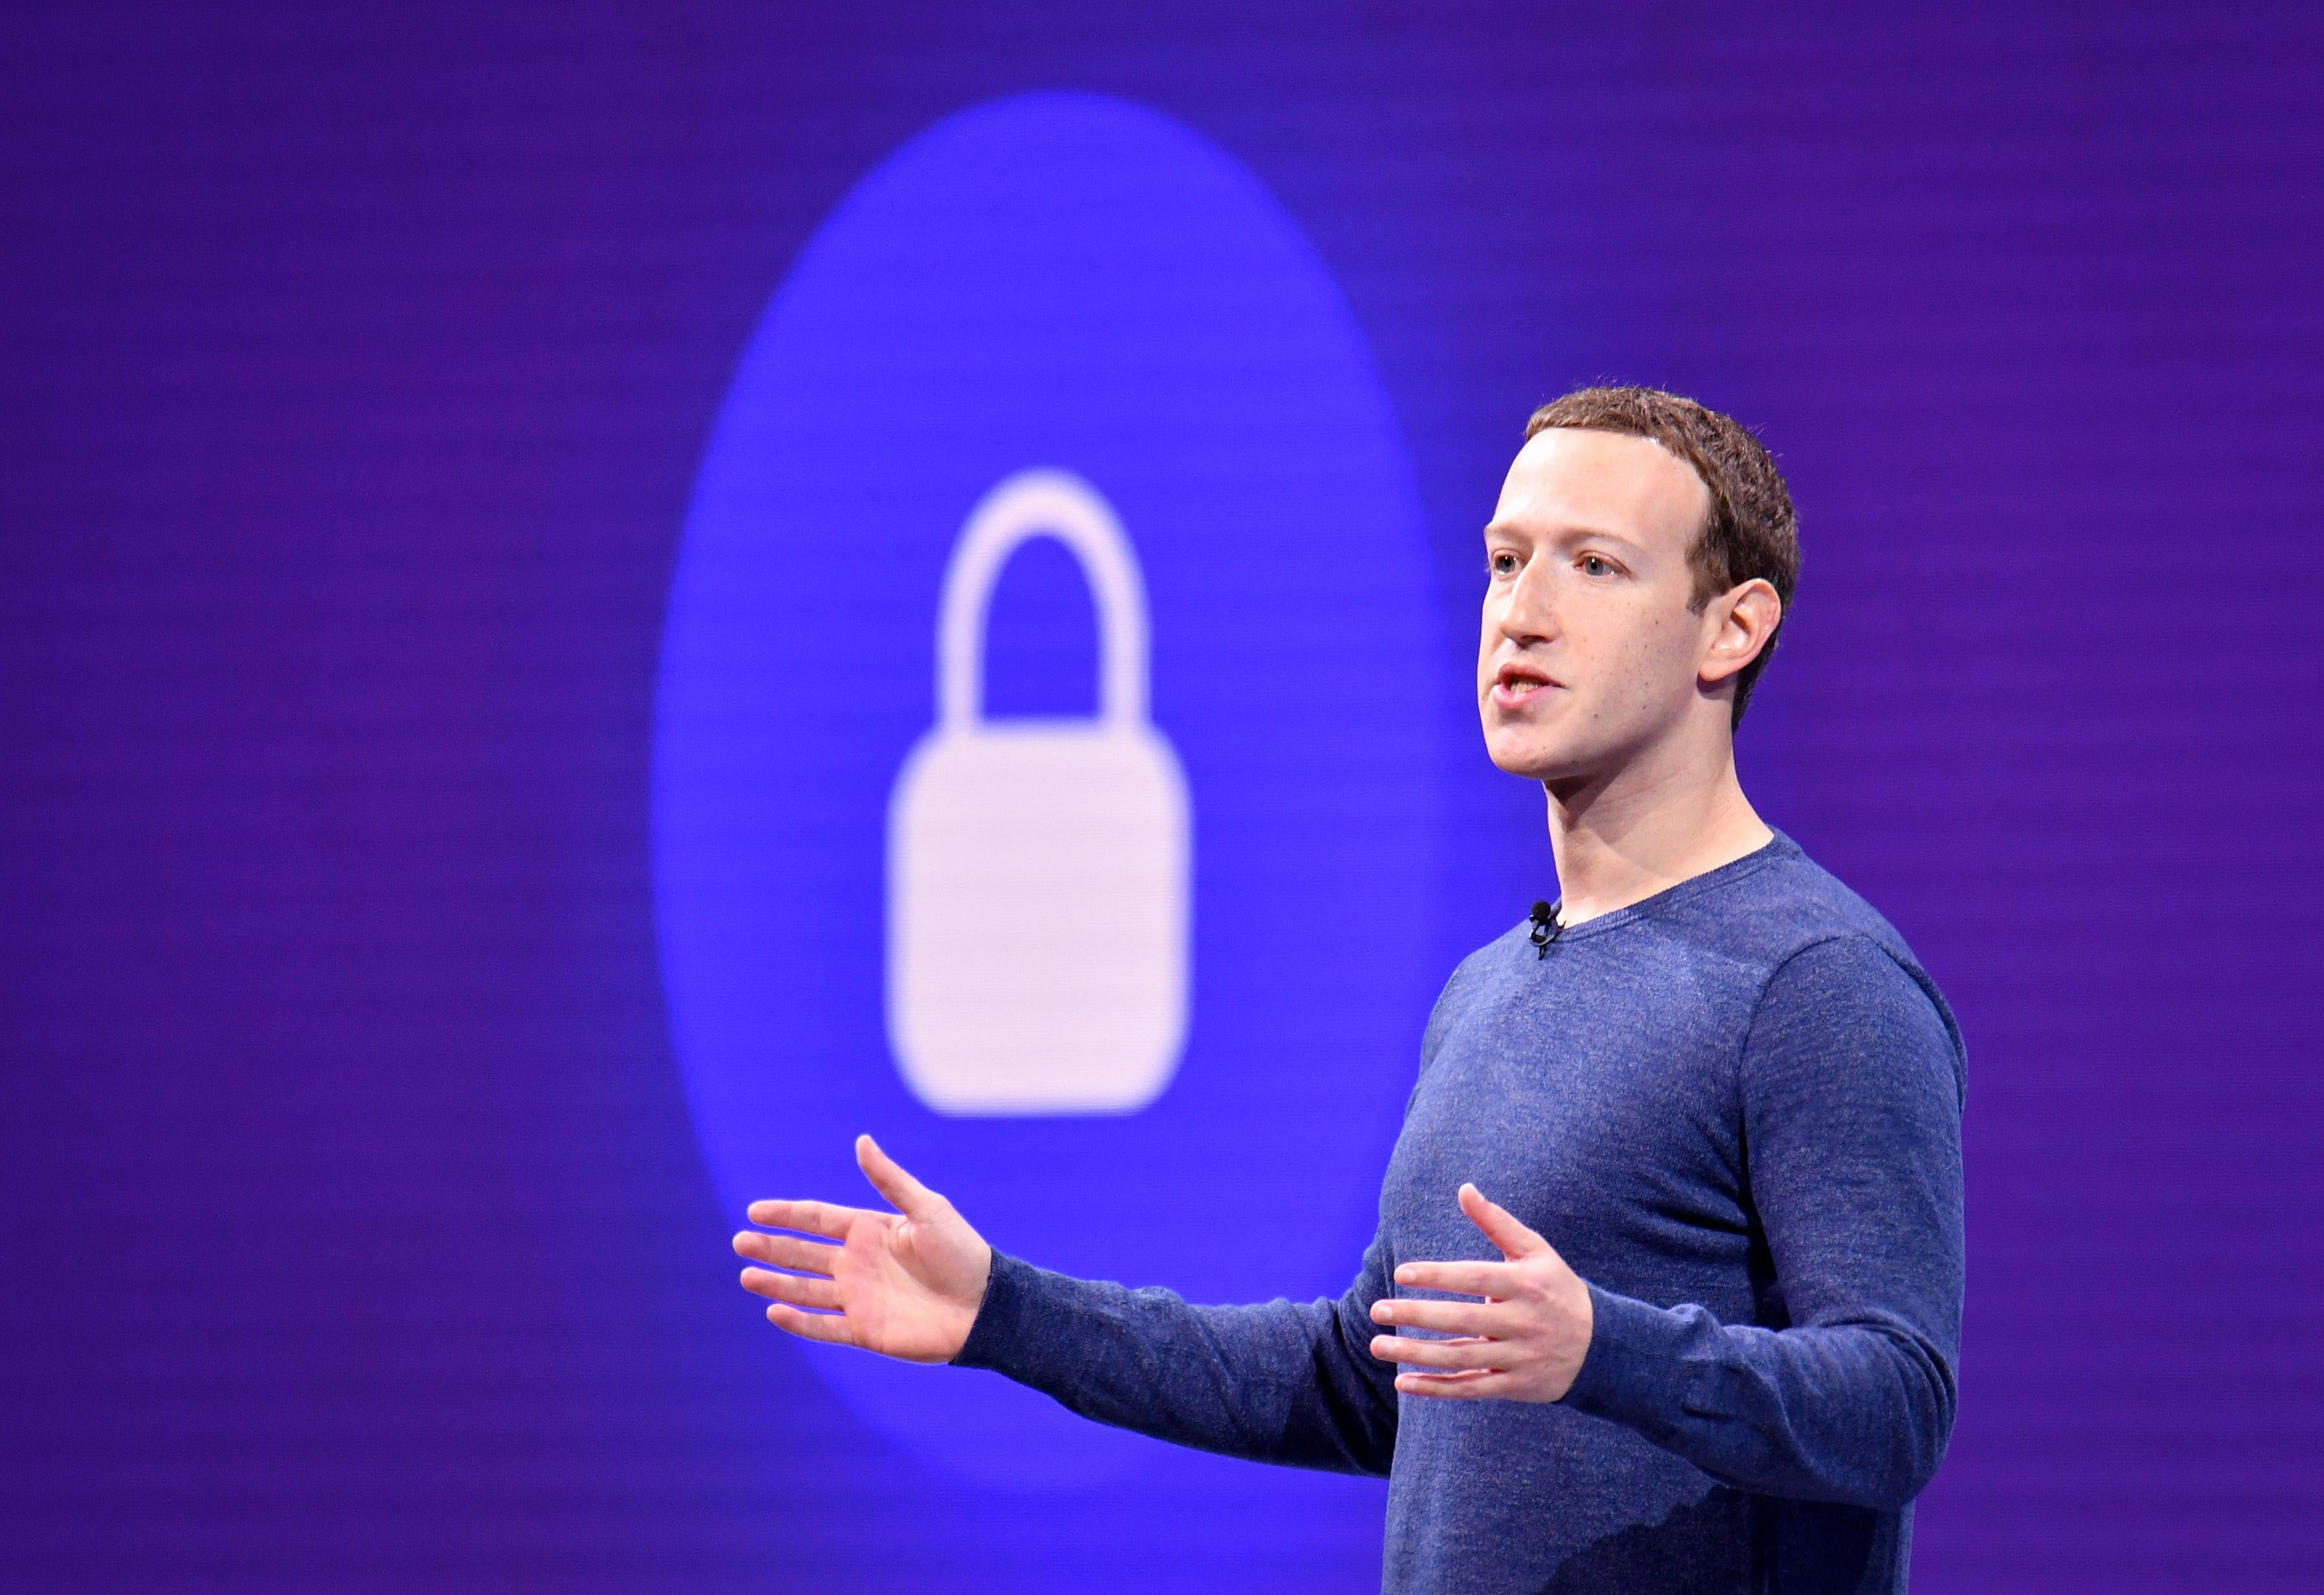 The New York Times reports that Facebook allowed device manufacturers to access data from users' friends without consent.